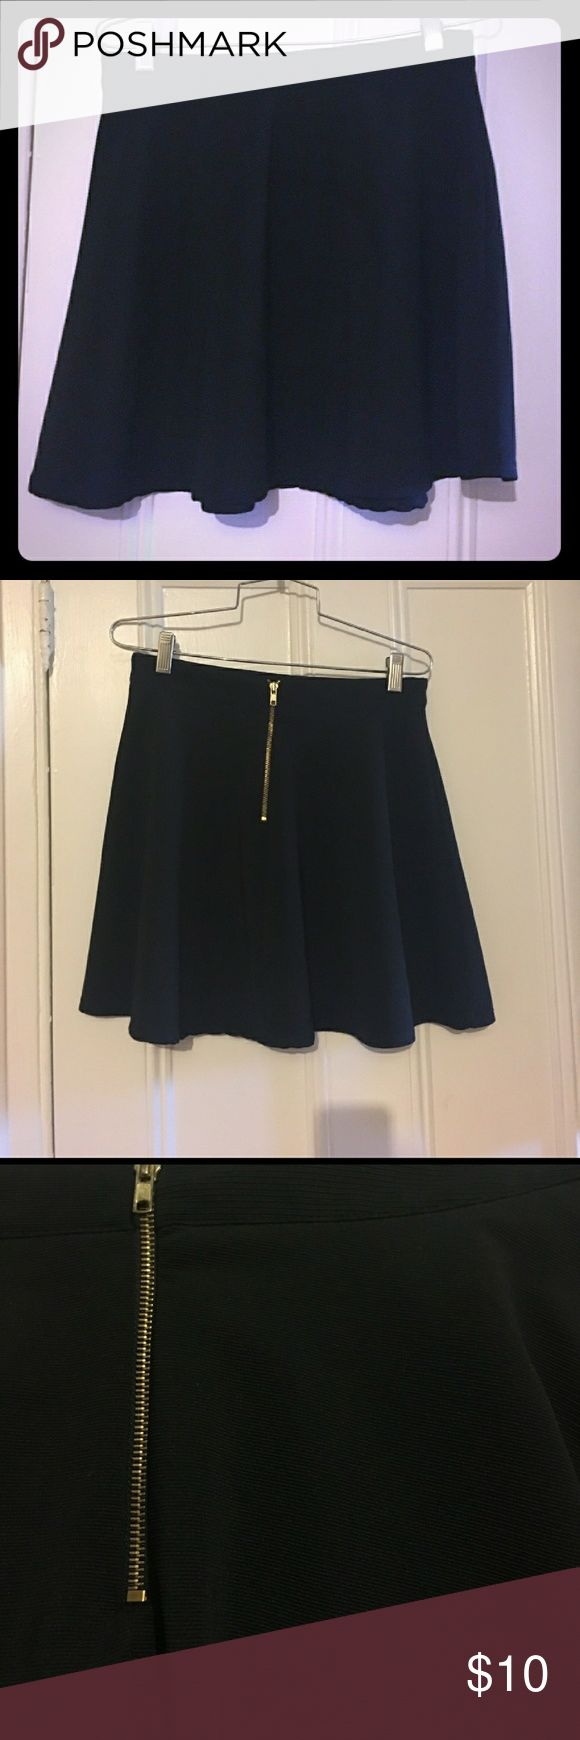 Little Black Skirt Romeo&Juliet Couture Reposh Reposhing this skirt as it's a true size S and slightly too loose for me. My loss is your gain!  The fabric is thick without being heavy. You can wear anything you want underneath and it won't show. Can be paired with tights and boots on a cold day at the office, or with a crop top and sandals for a sunny summer concert.  It's versatile and in mint condition. If you look up this brand at Nordstrom it retails for well over $100. I'm reselling for…